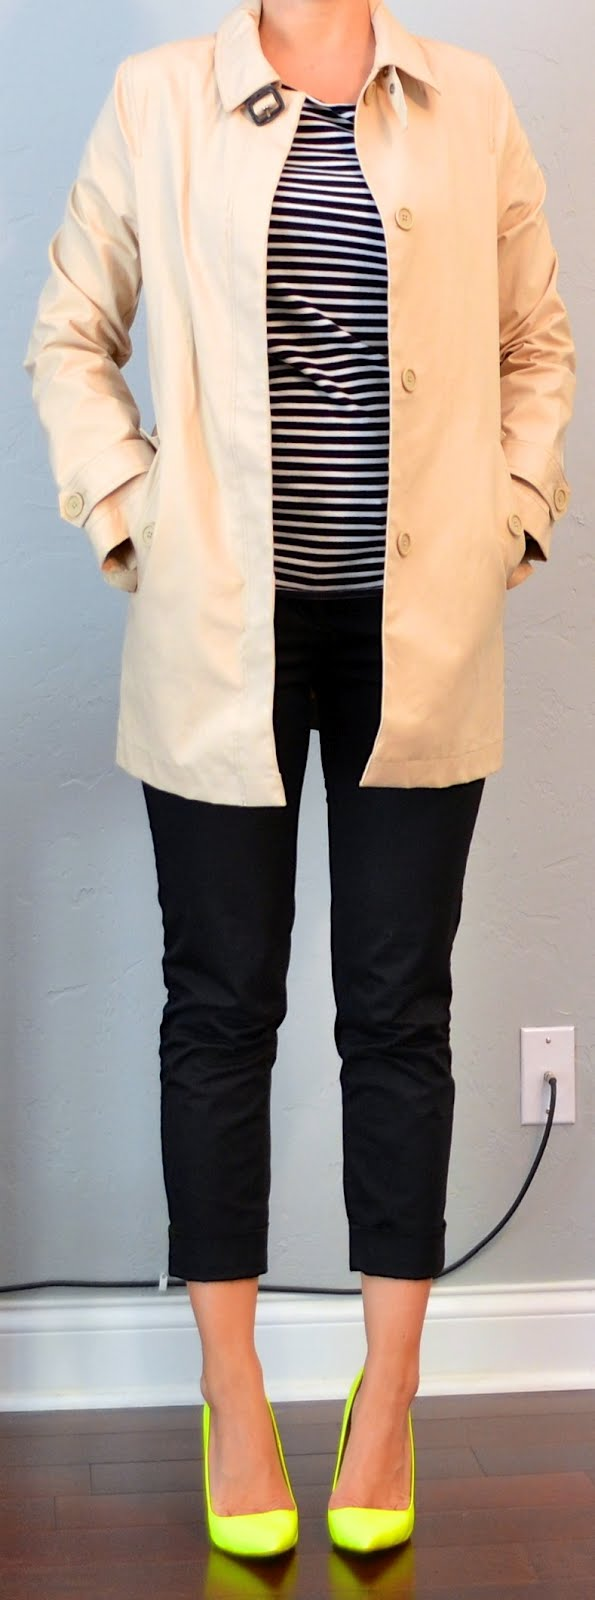 Outfit post striped shirt black cropped pants tan trench neon yellow shoes